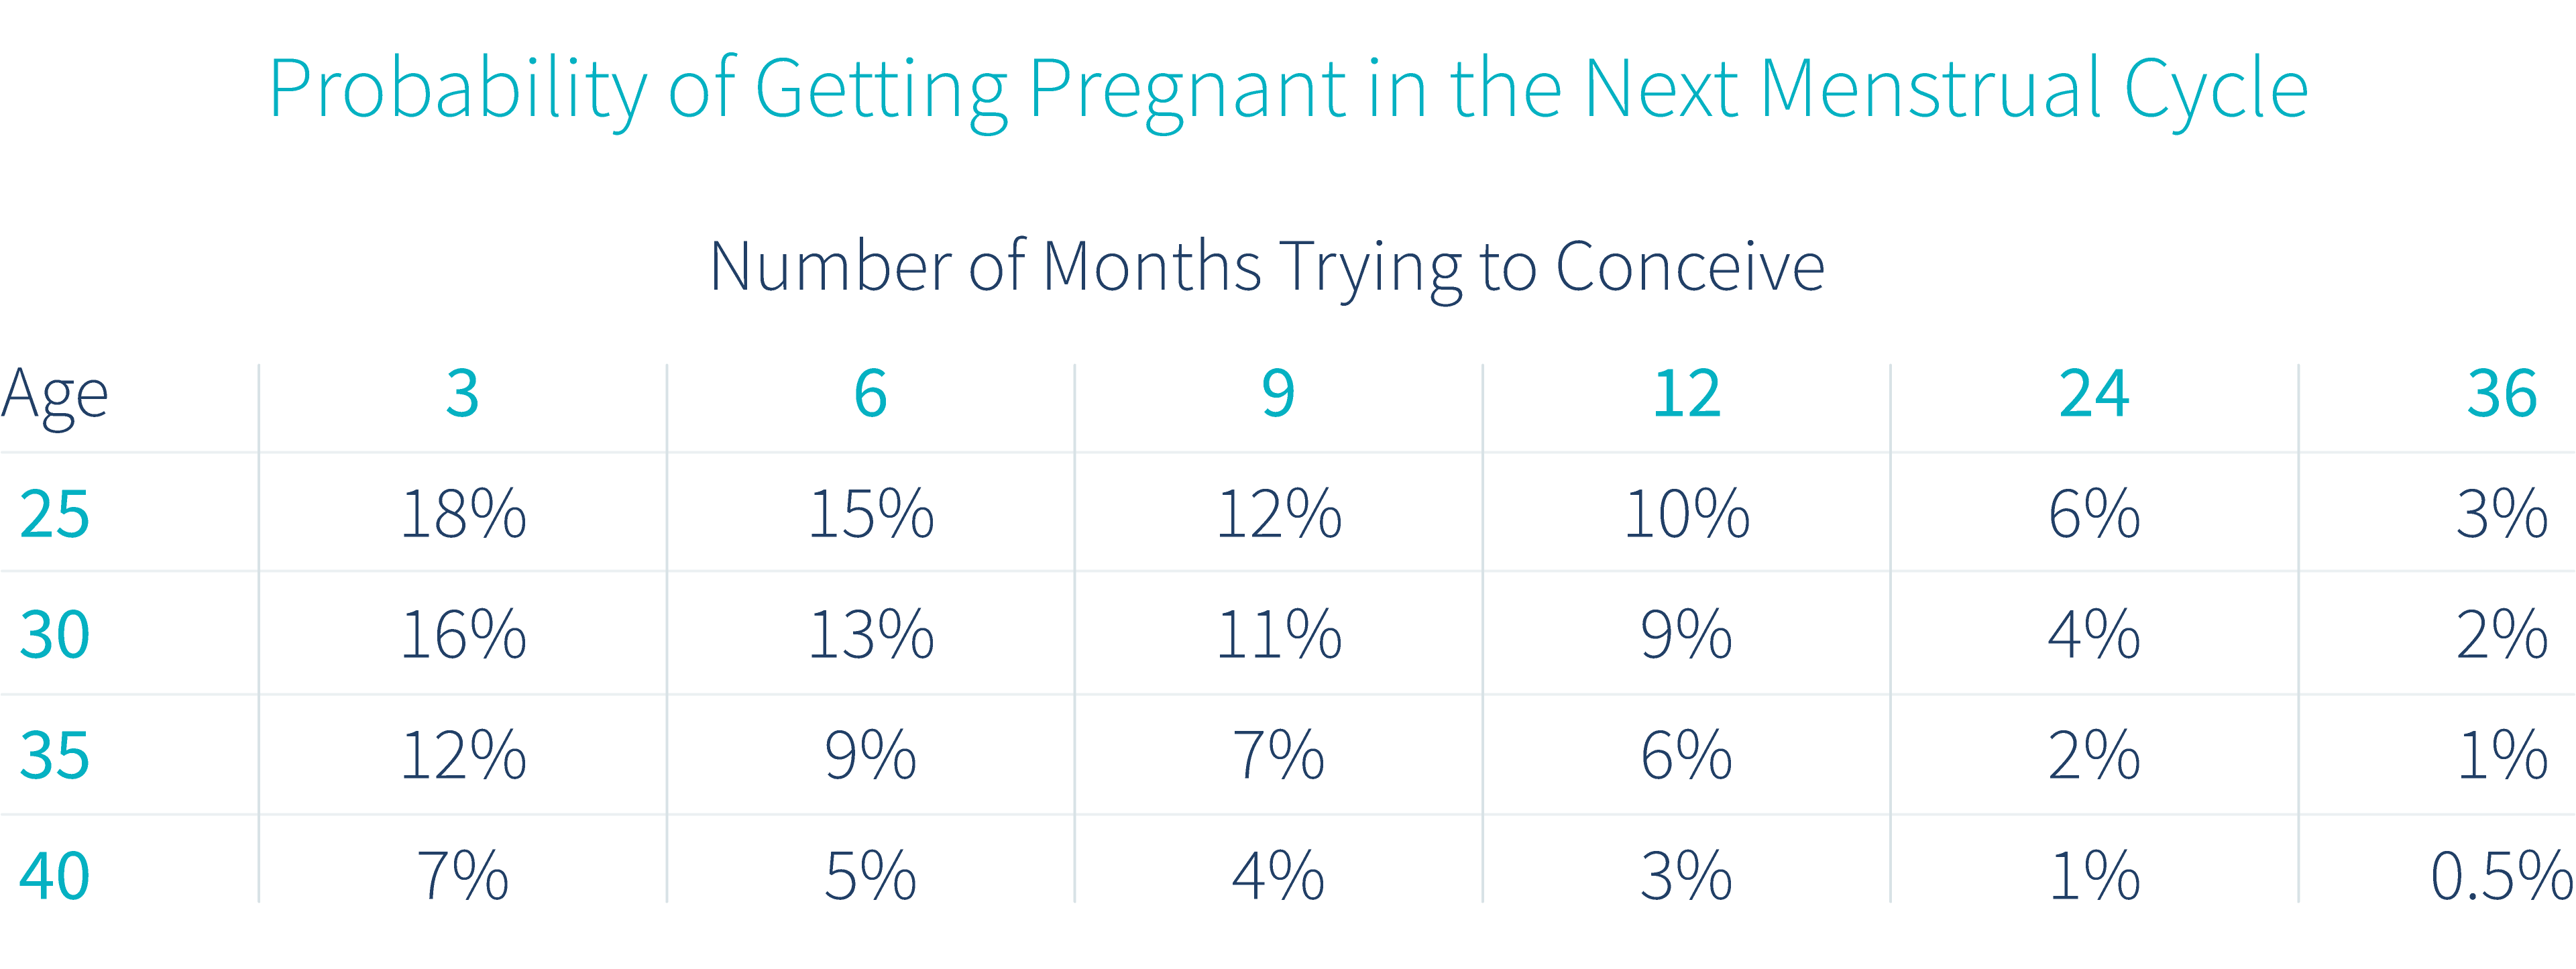 probability-of-getting-pregnant-by-age